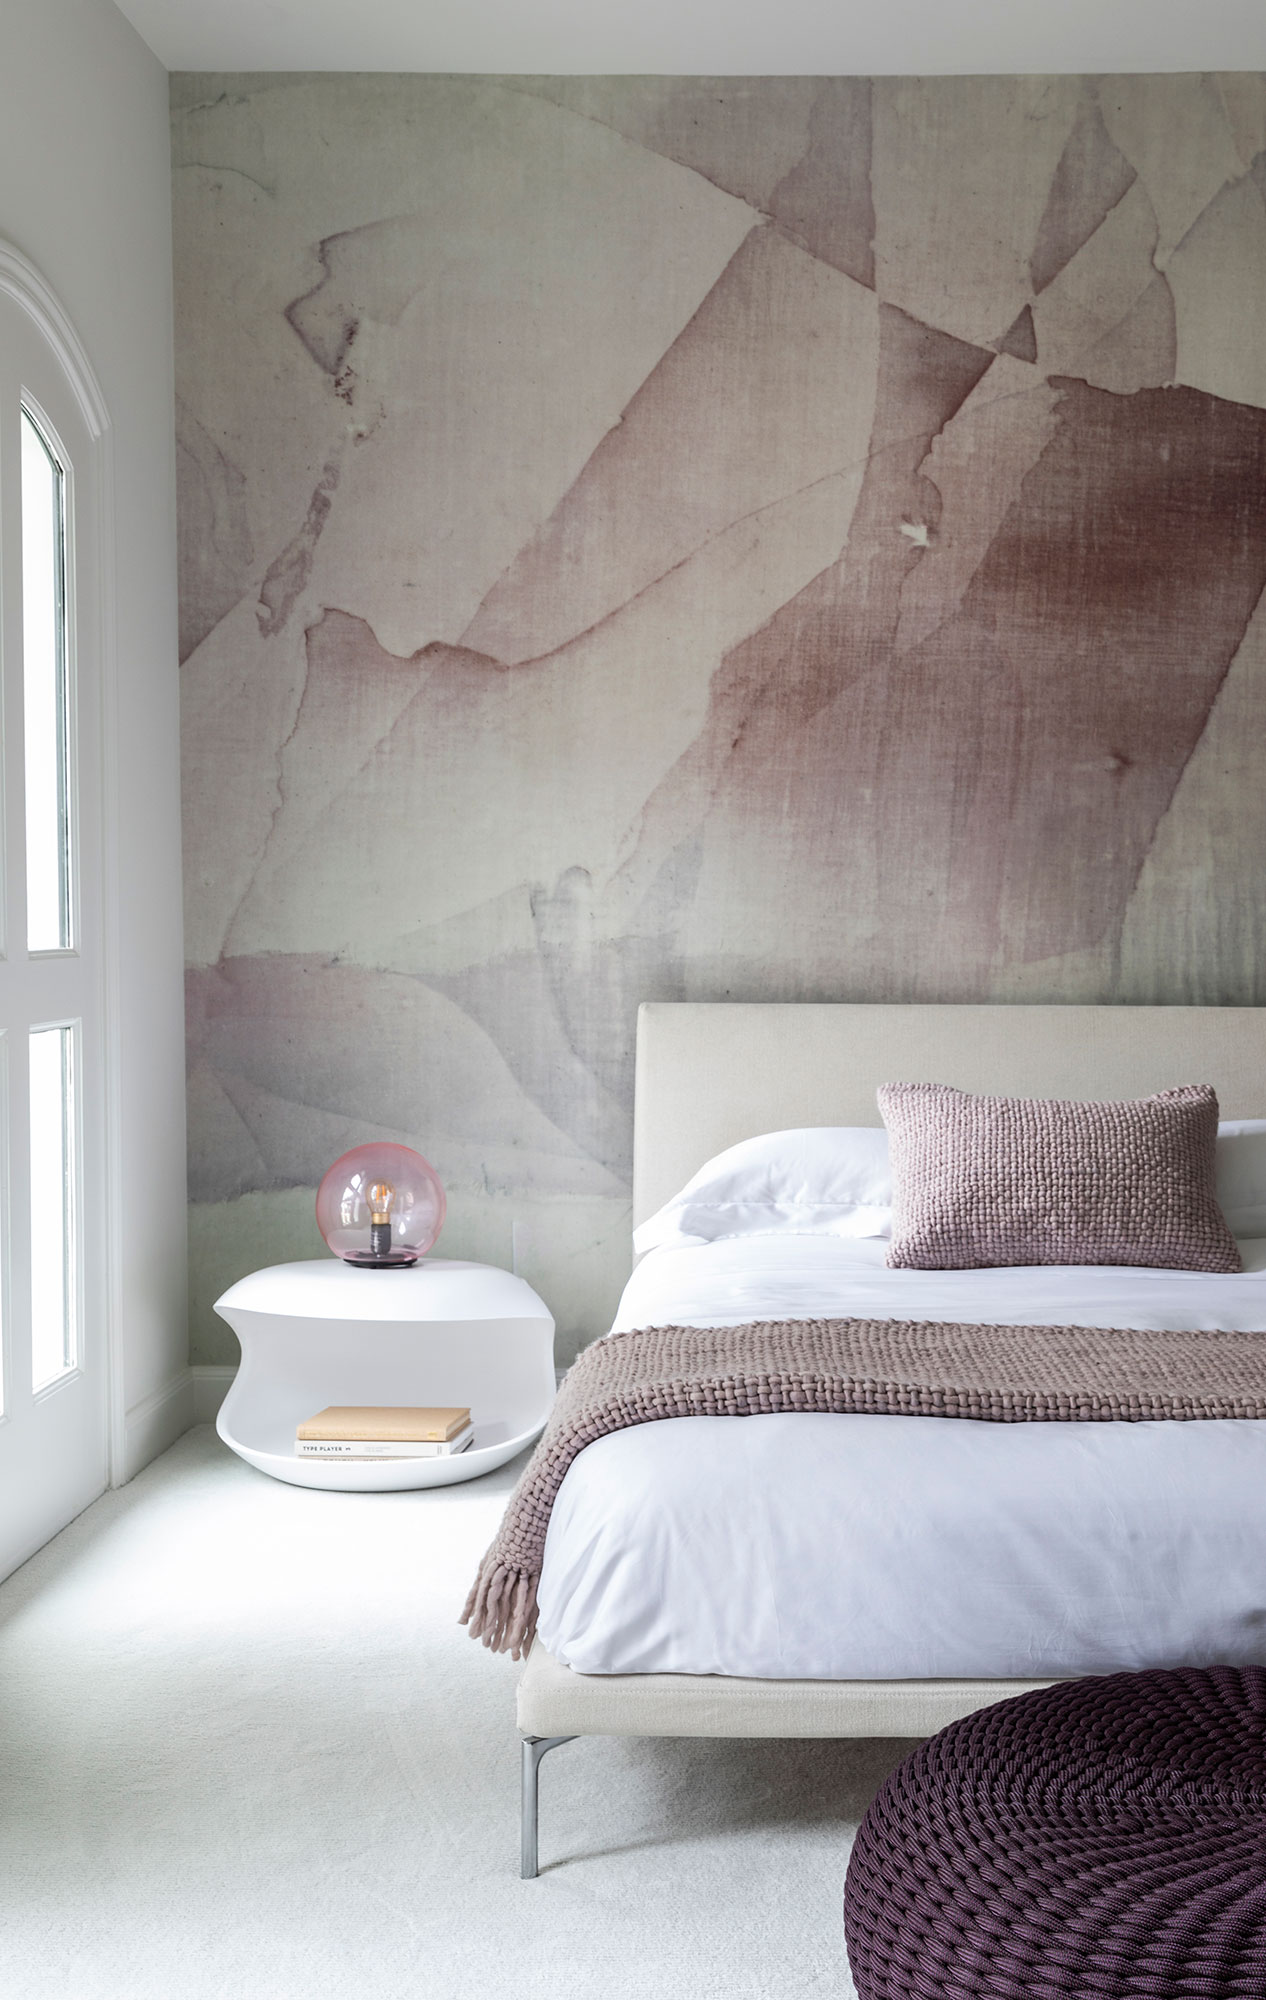 Bedroom Interiors Photography - Julie Soefer Photography